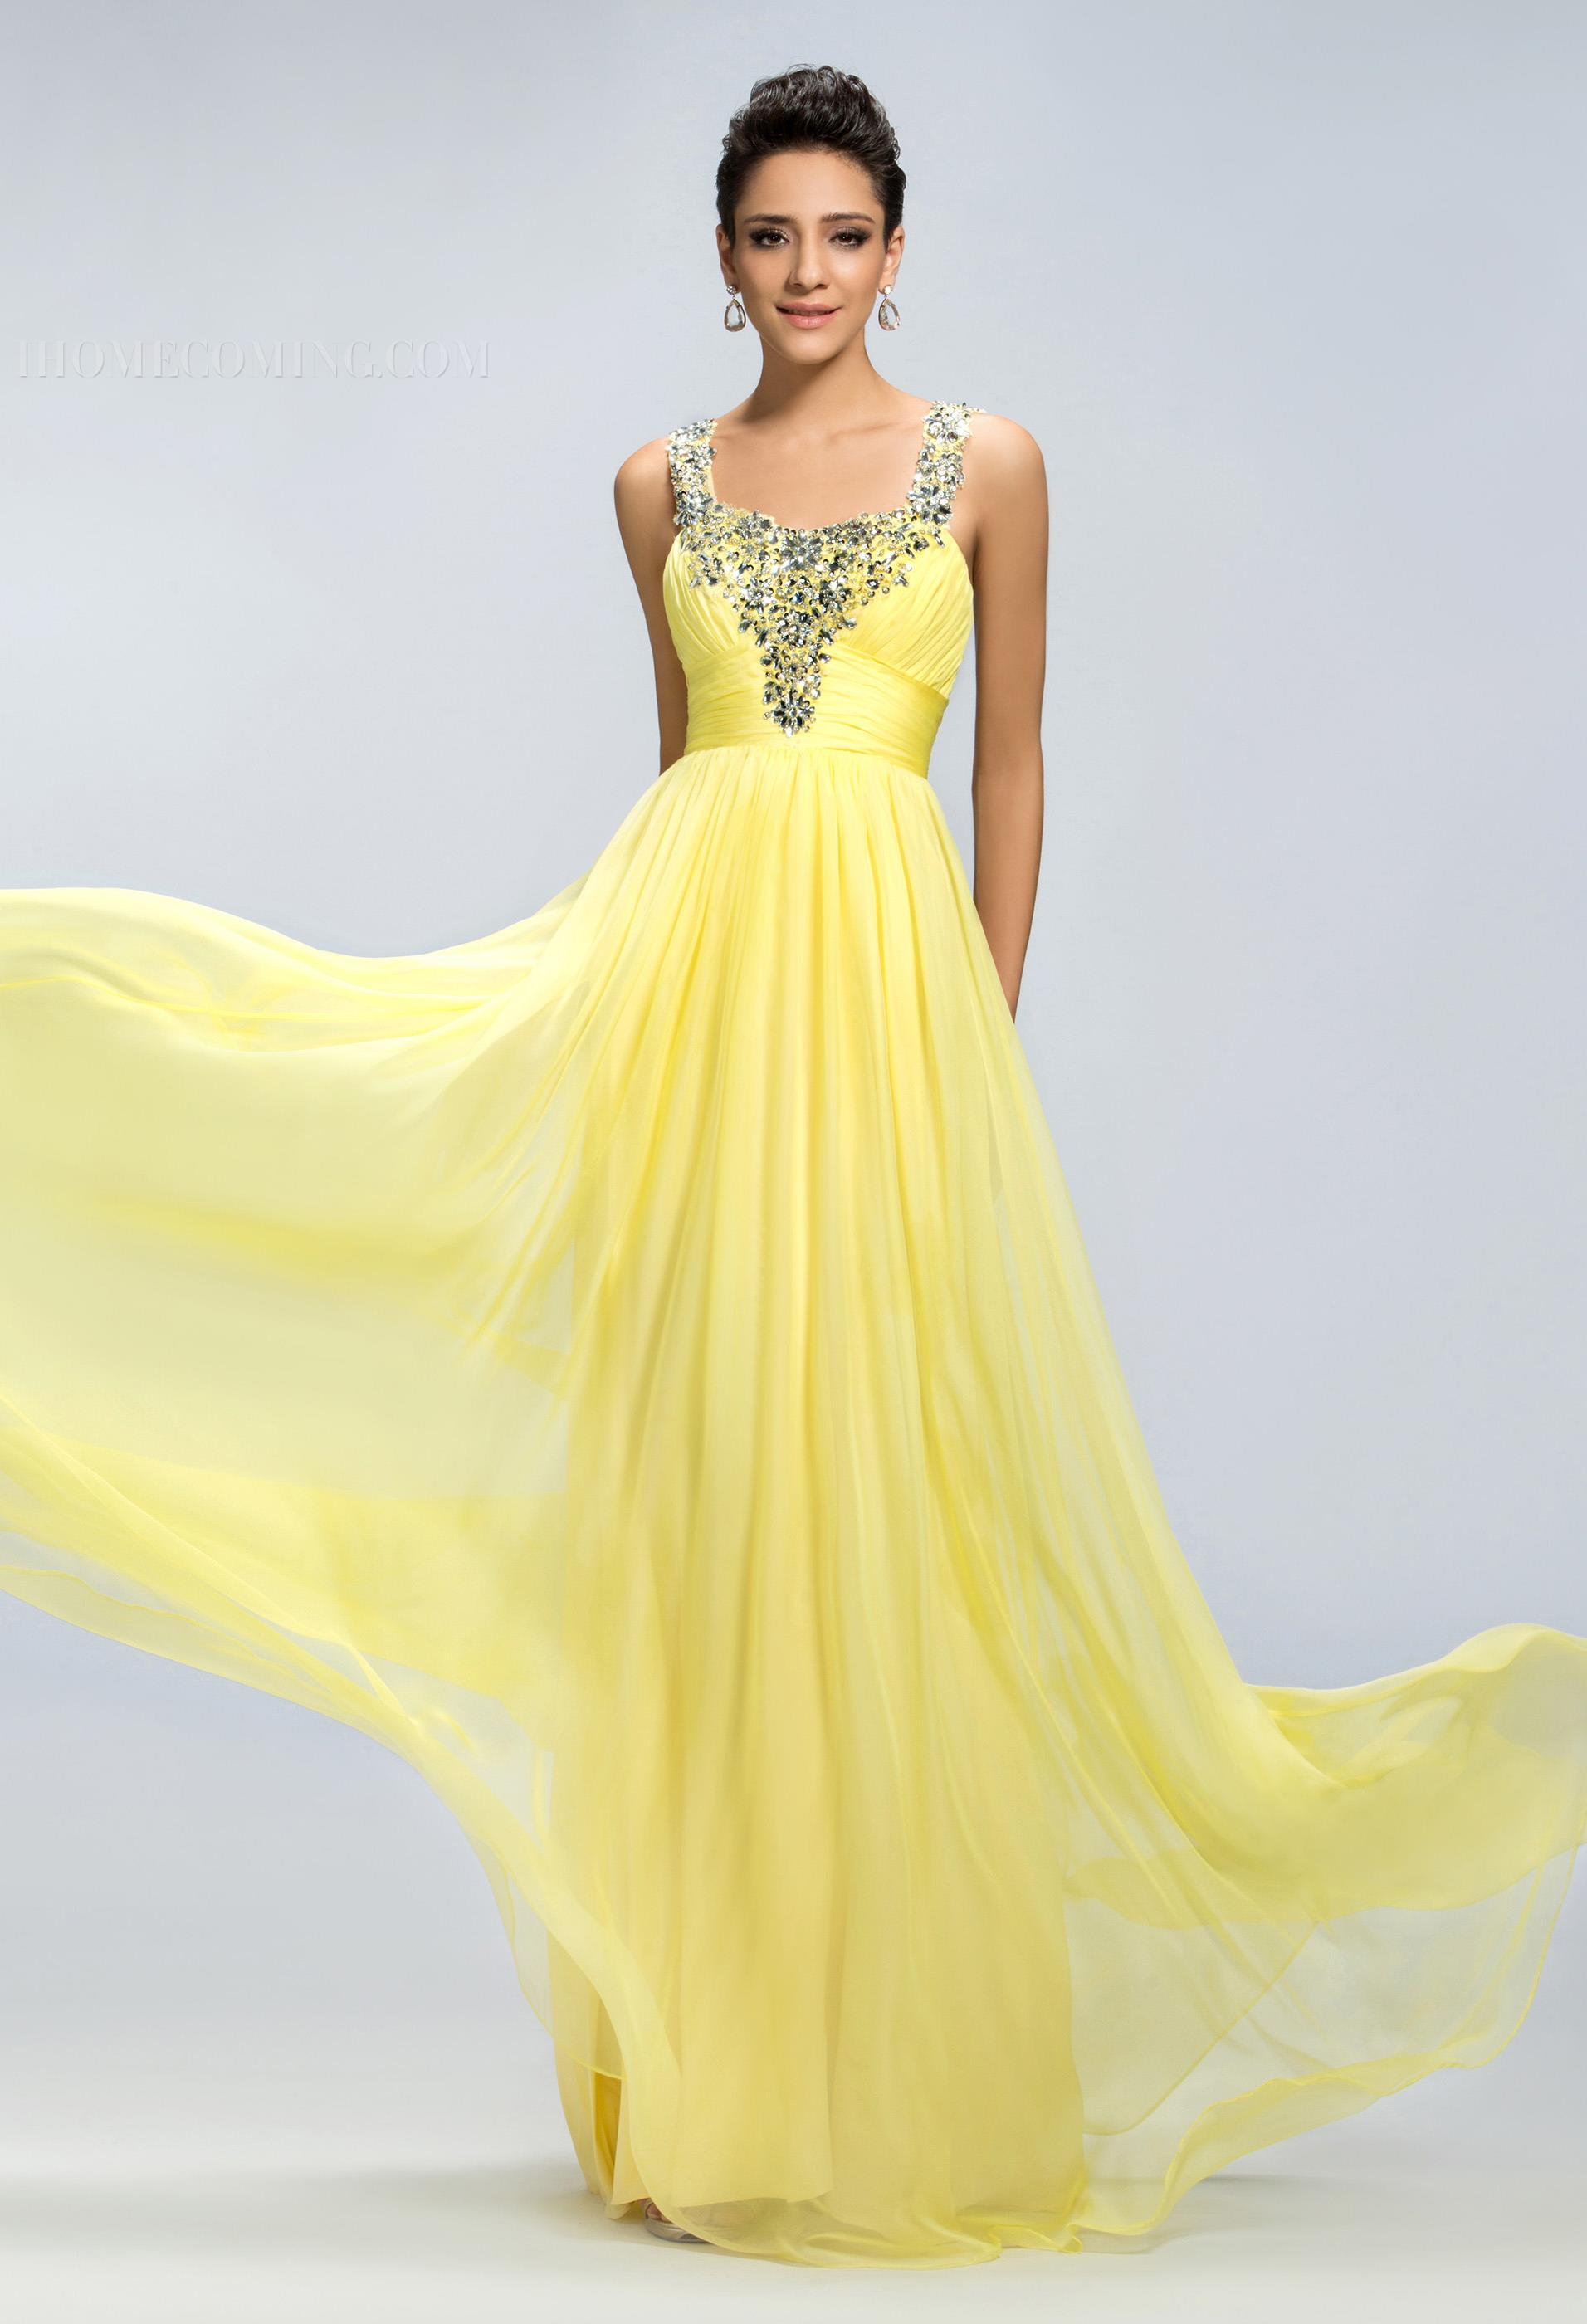 Read these Tips Before Buying Evening Dresses - Leisure and Me